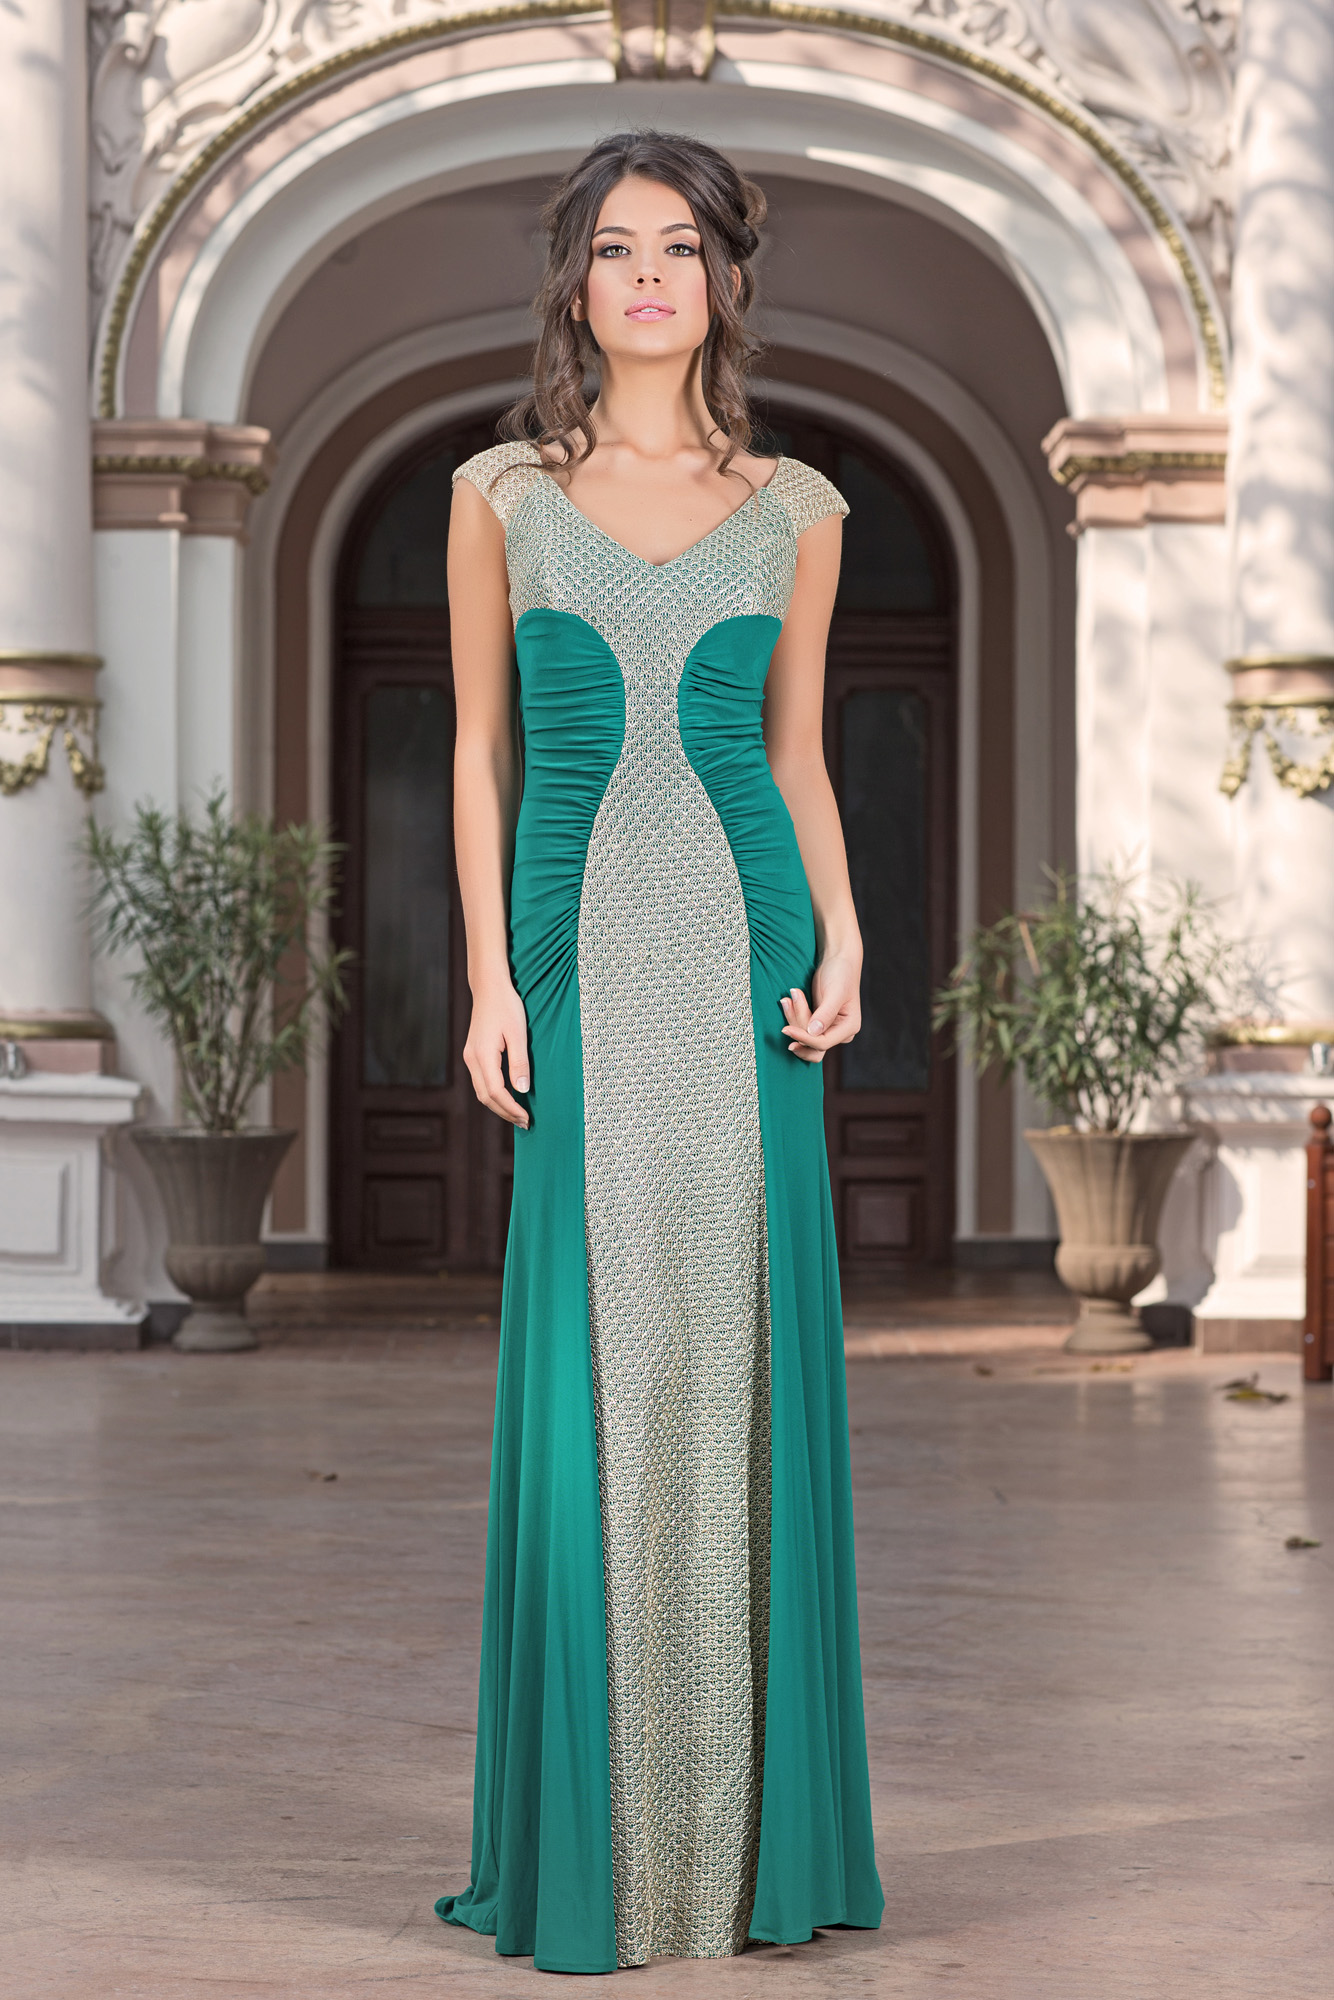 Green Evening Dress | Adeona | Vero Milano Fashion Shop